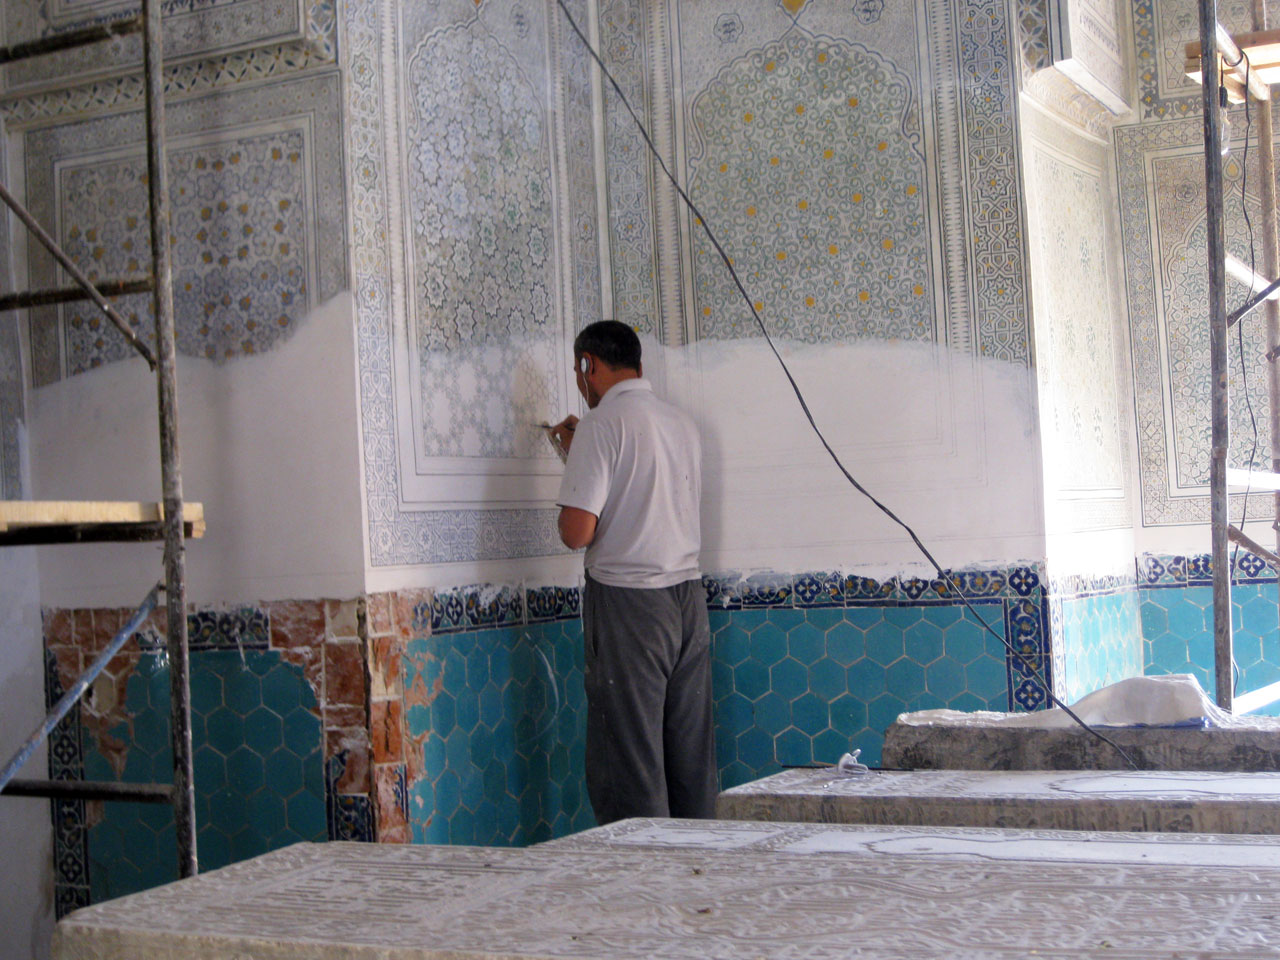 Restoration work at Gumbazi Seyidan mausoleum, Shakhrisabz